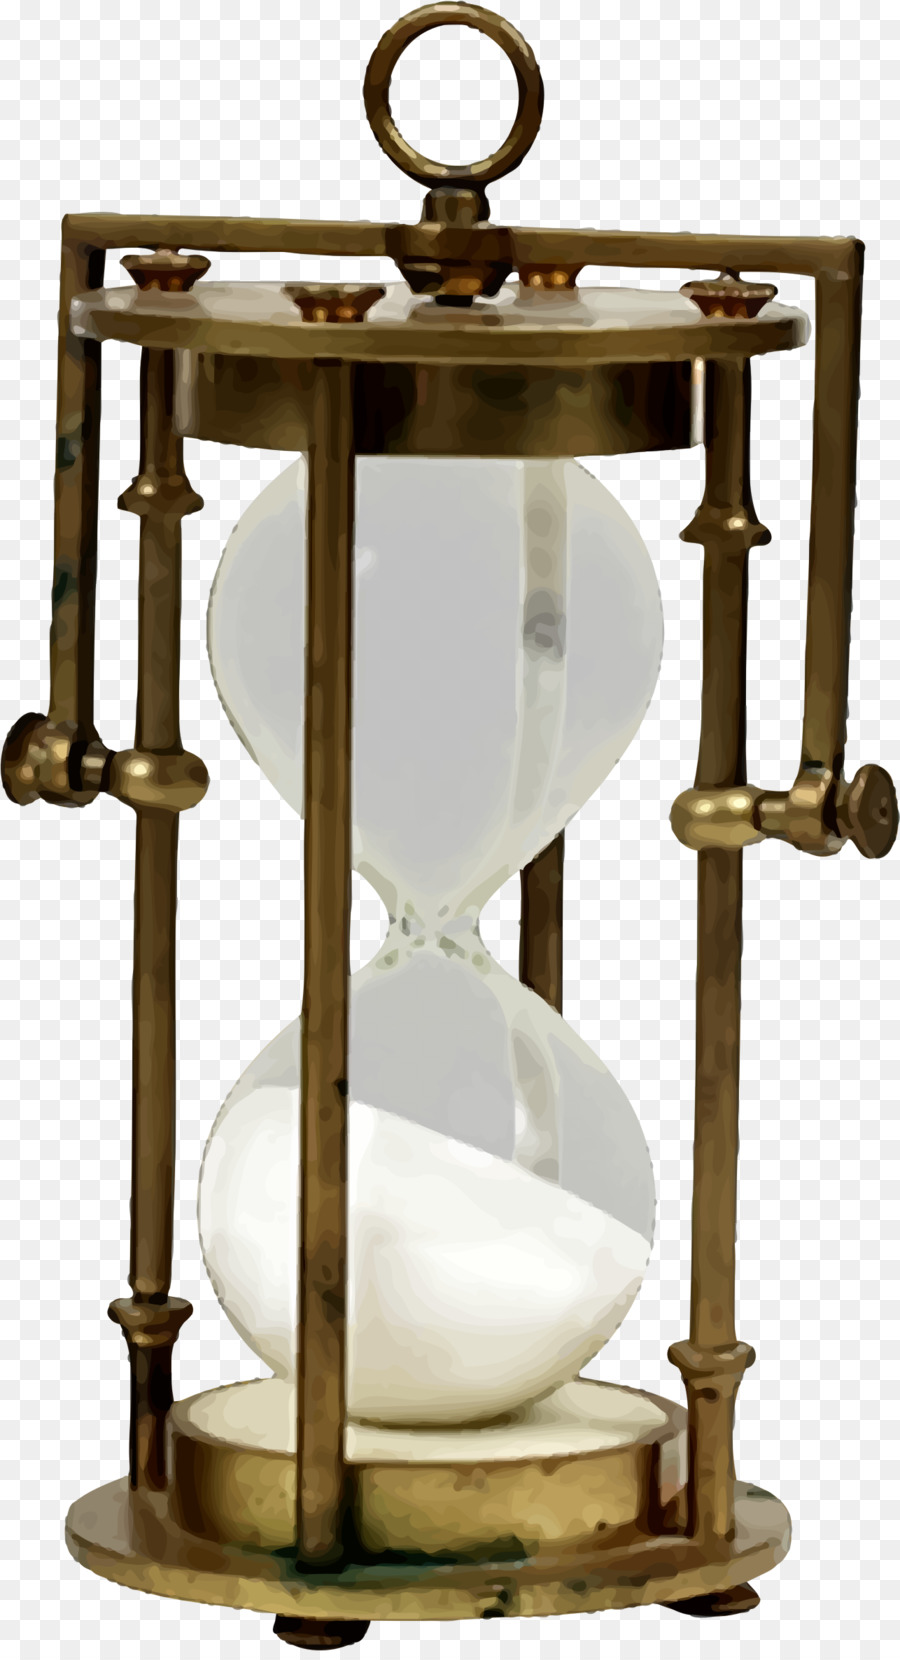 medium resolution of hourglass clipart hourglass time